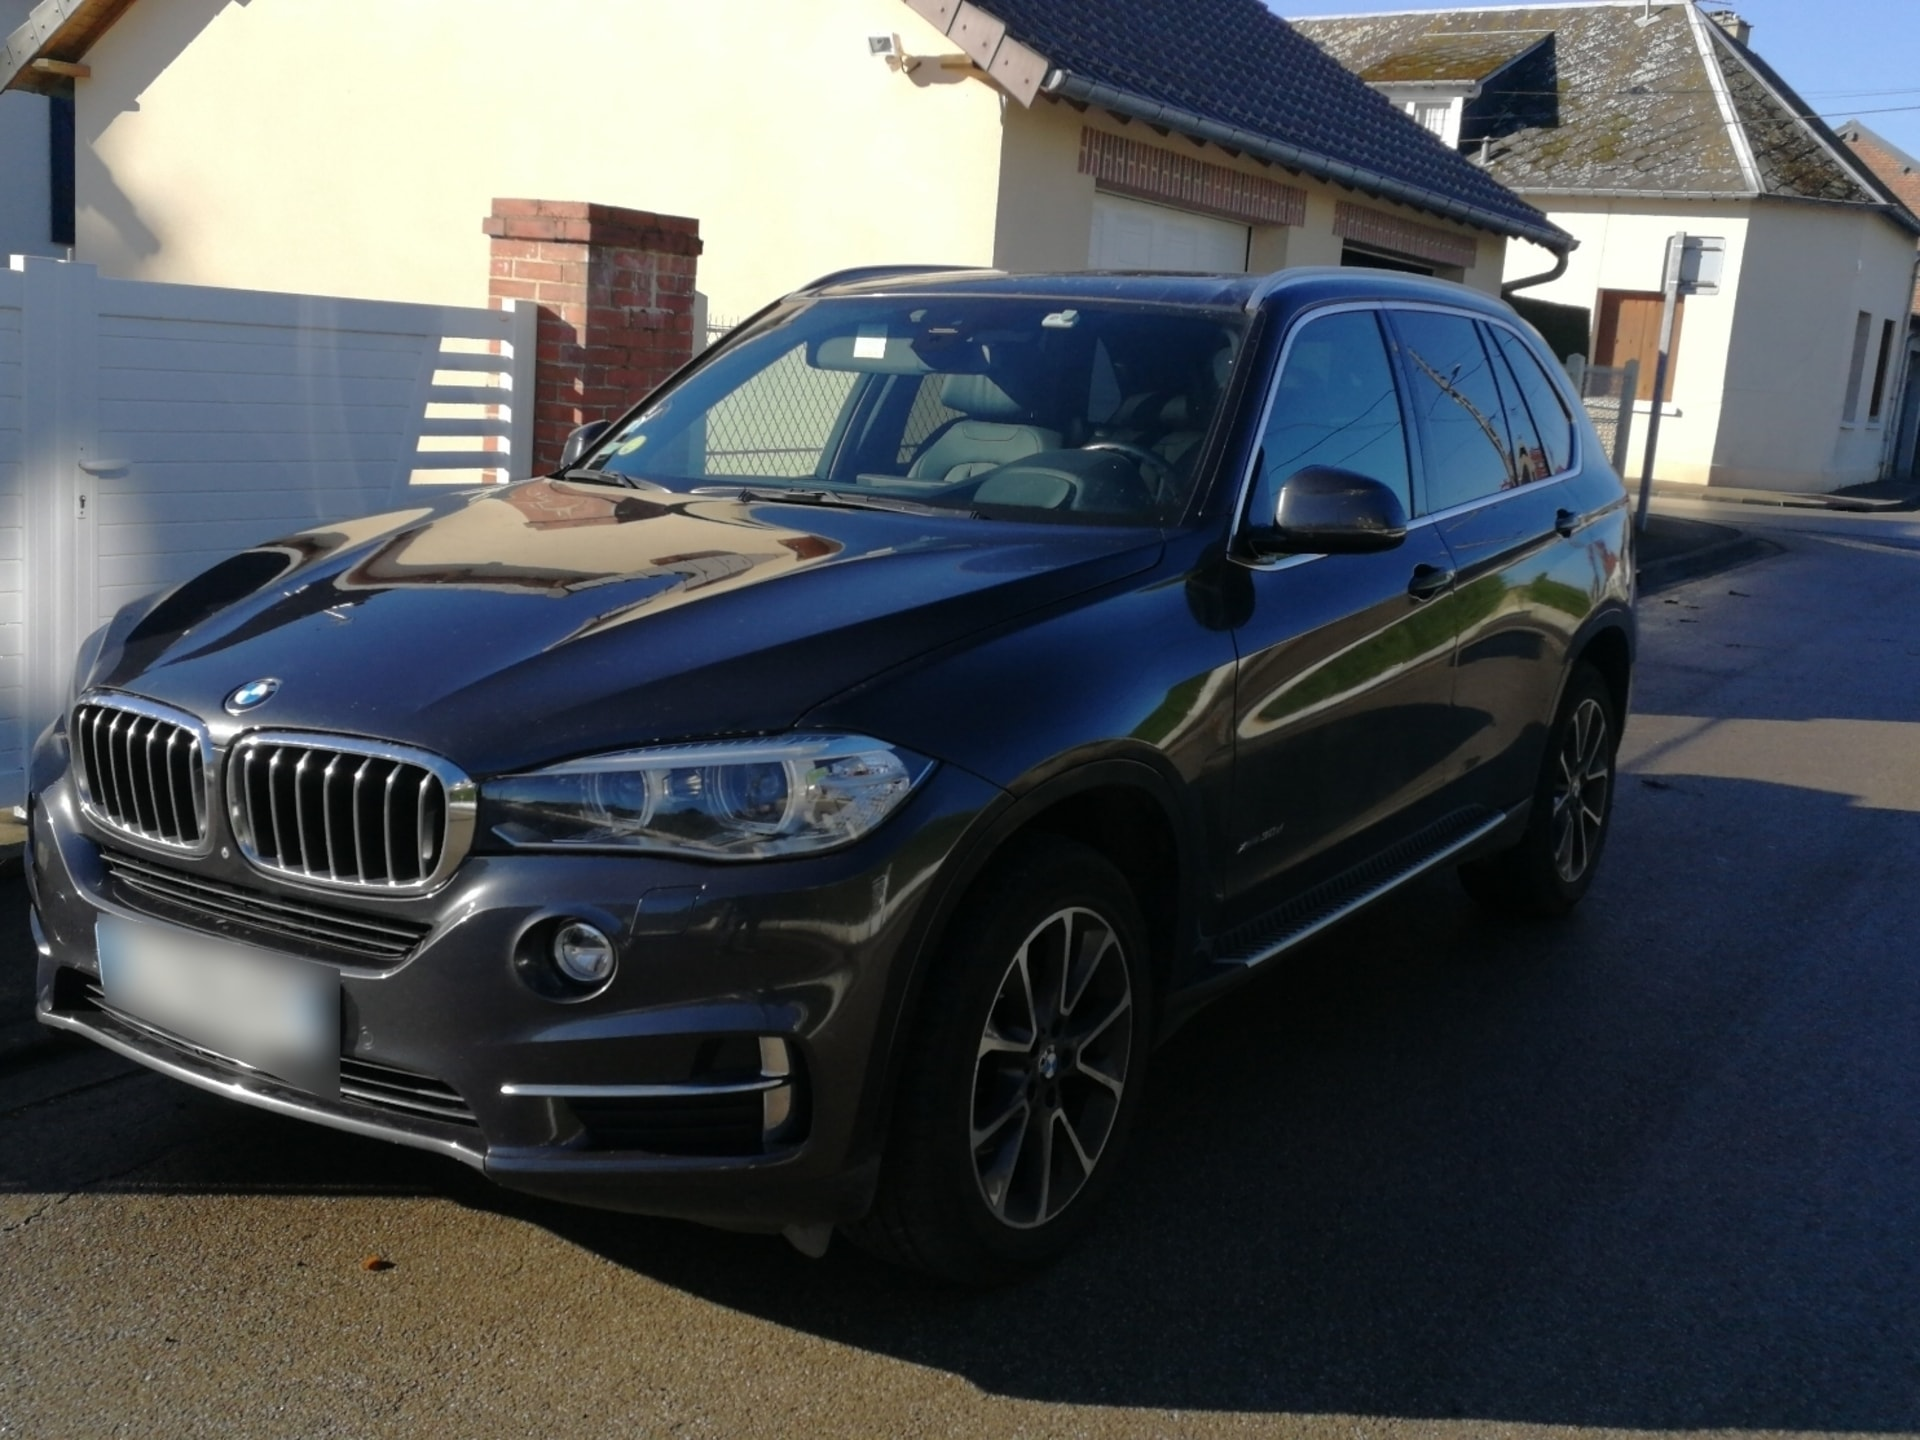 BMW X5 3.0 D 260 EXCLUSIVE XDRIVE BVA - Carverntura